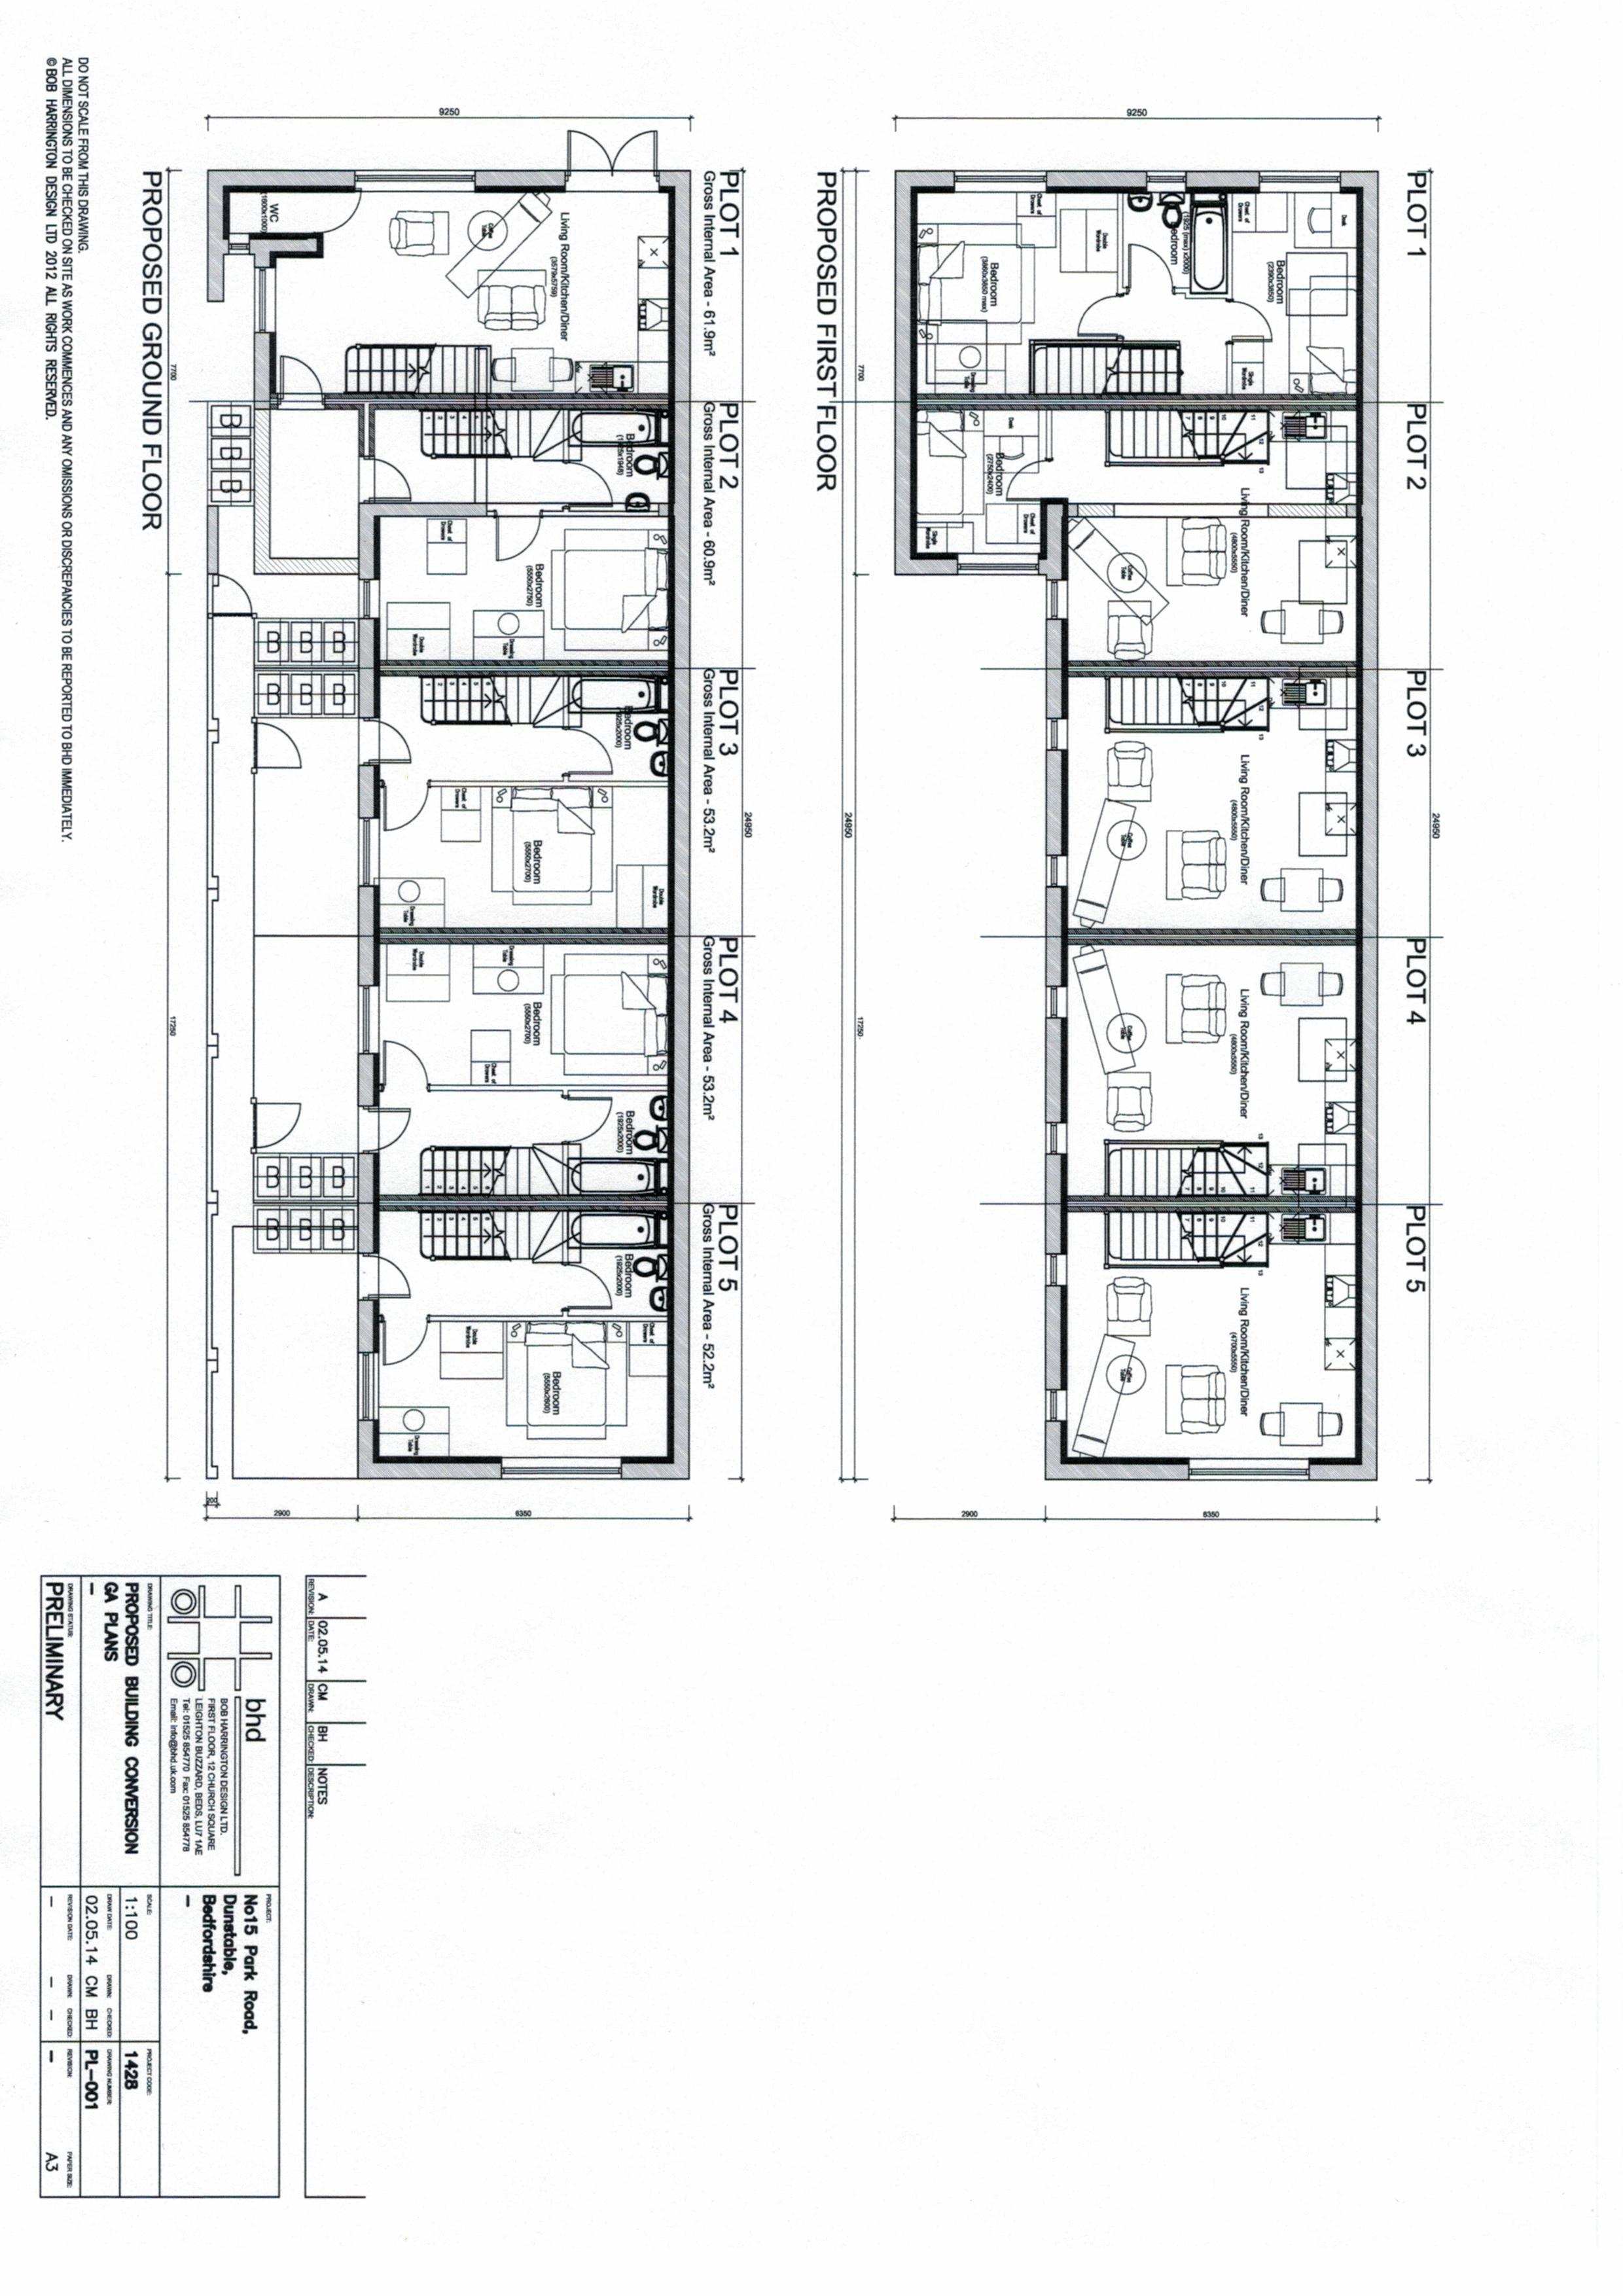 Potential Residential Conversion